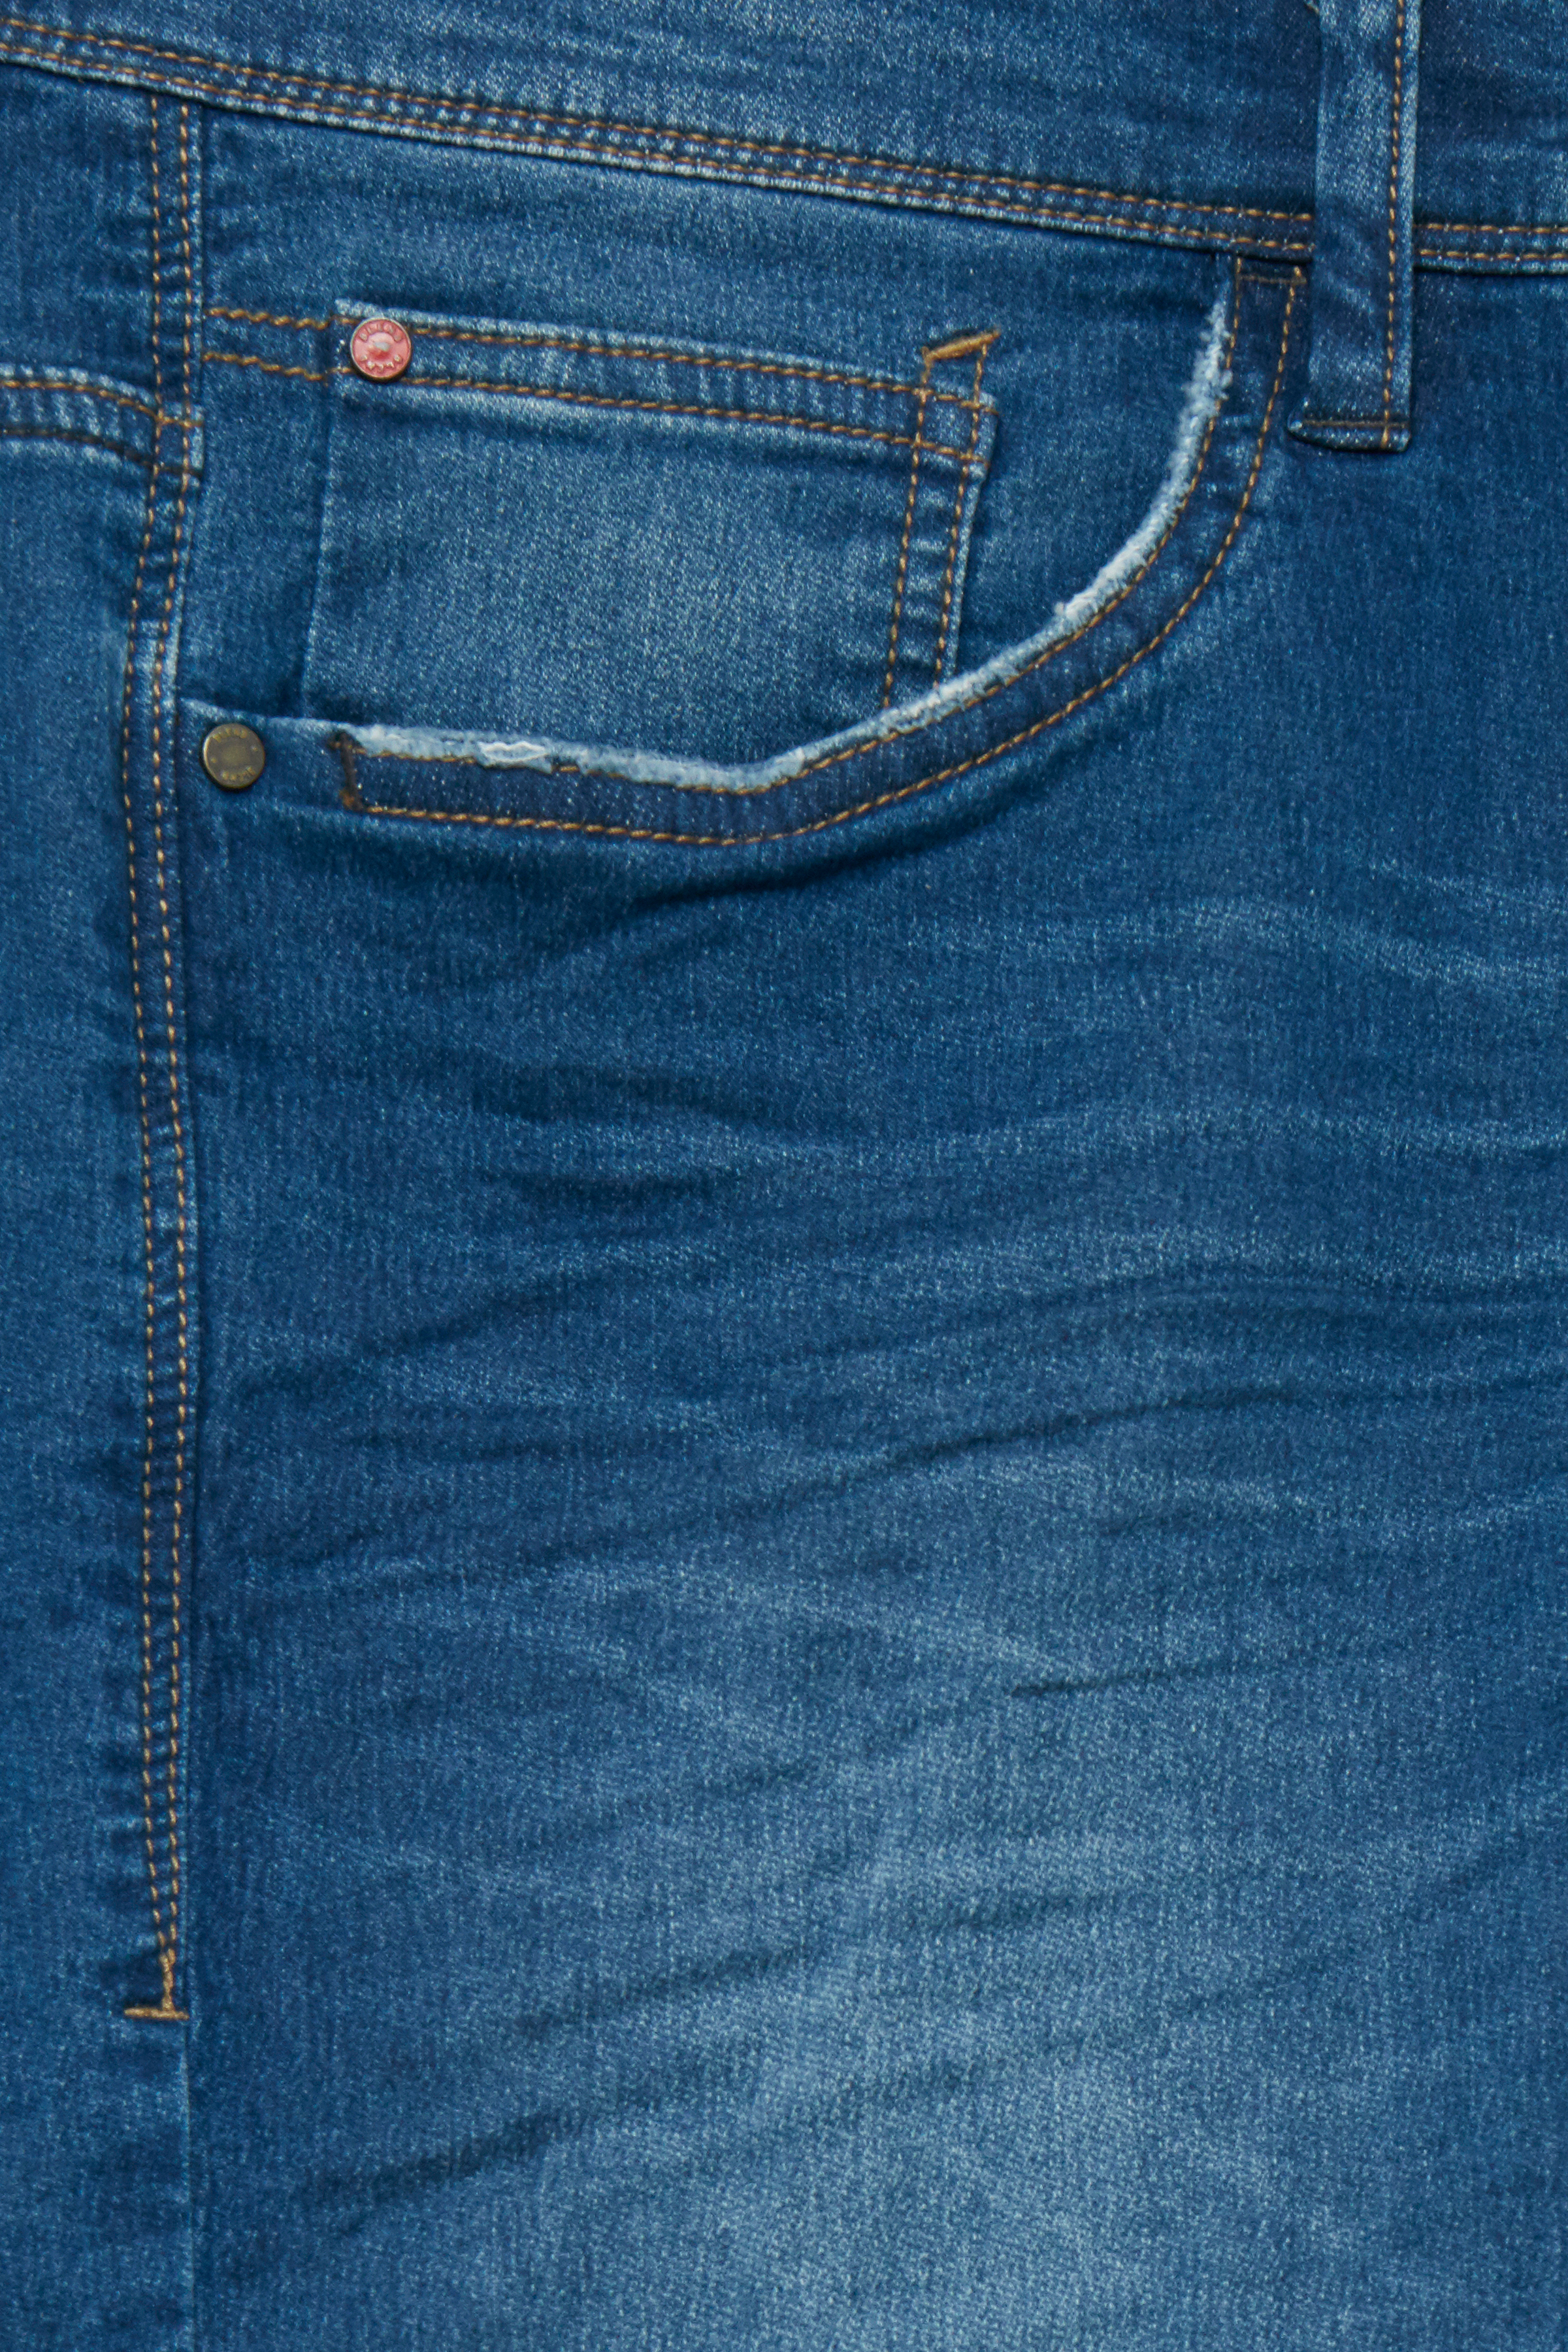 Denim Middle blue Twister jeans – Køb Denim Middle blue Twister jeans fra str. 28-40 her